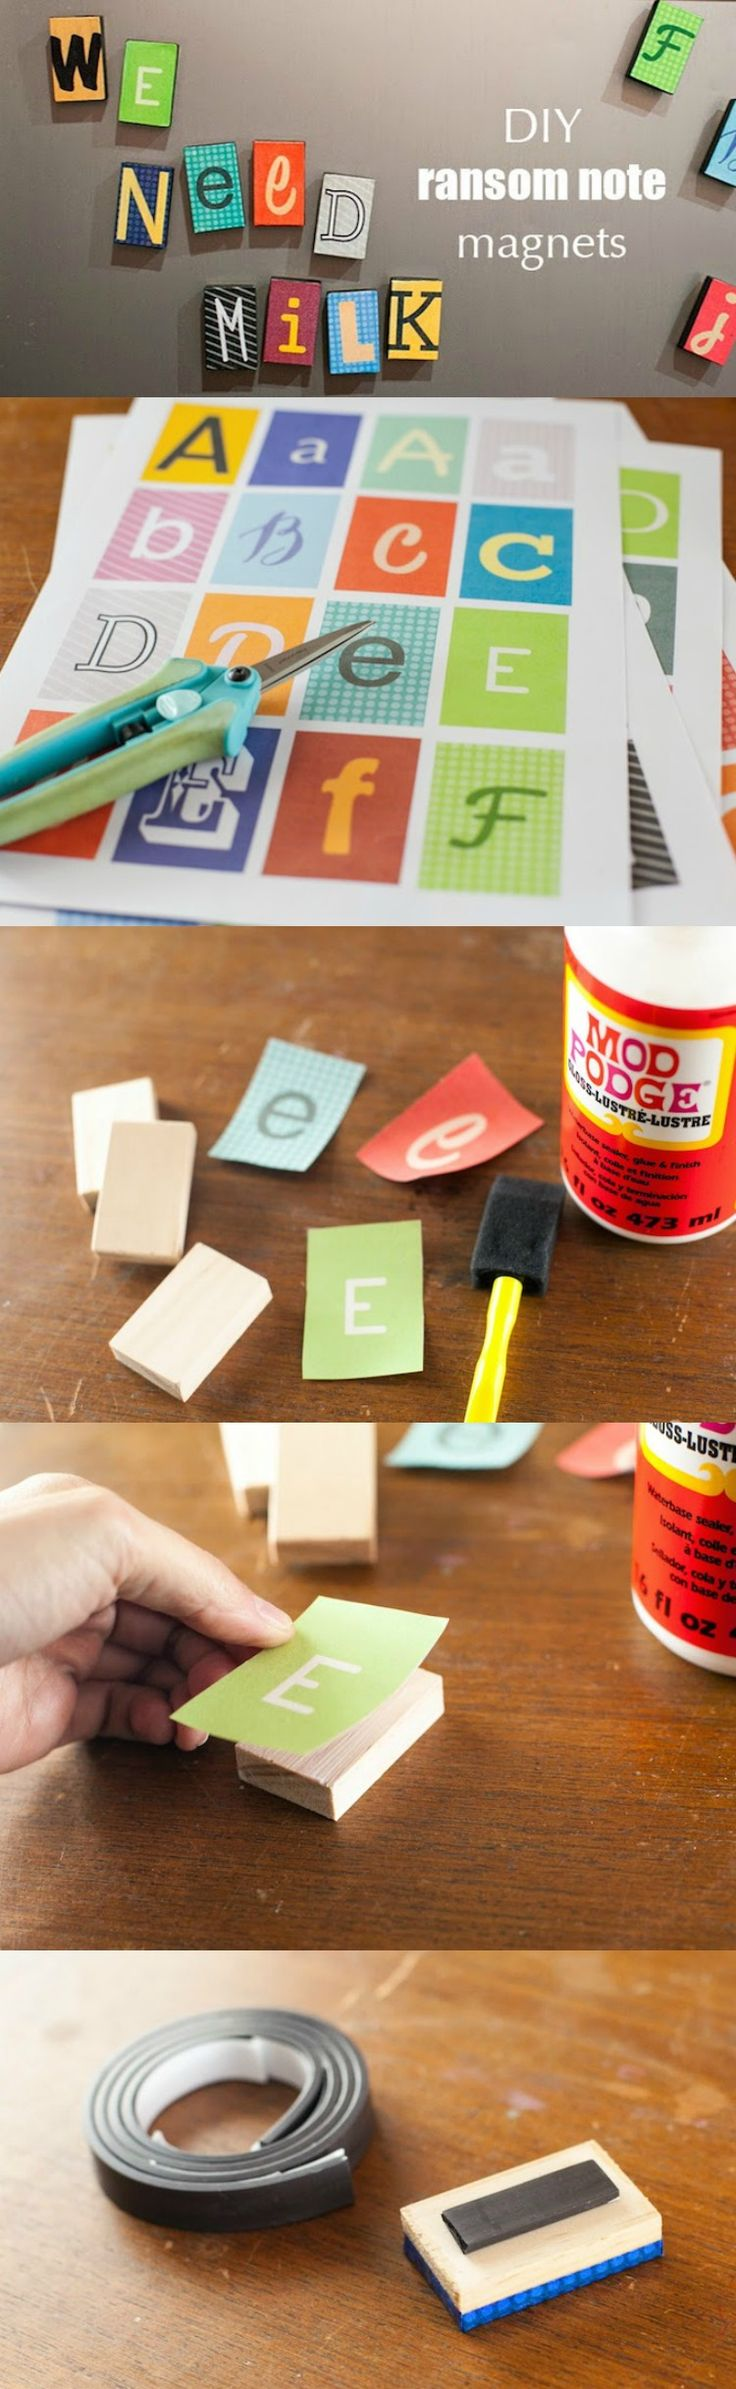 These DIY magnets are so easy . . . and the ransom note font makes them fun, too! Make with Mod Podge . . . and you can also get the free printable by clicking through!